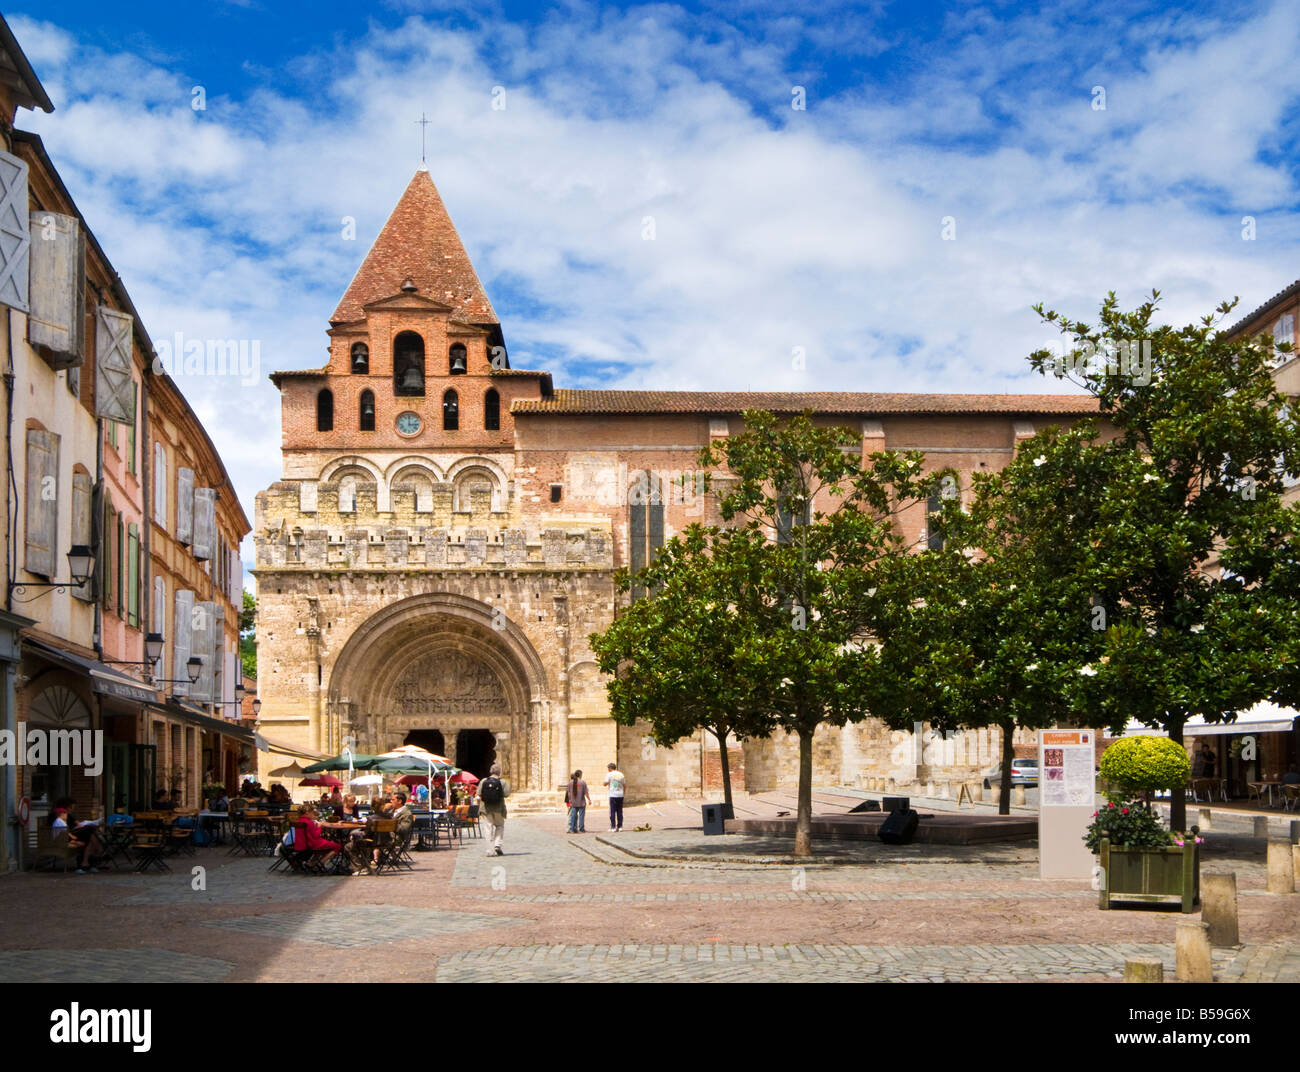 L'Abbaye Saint Pierre de Moissac à Moissac, Tarn et Garonne, France Europe Photo Stock